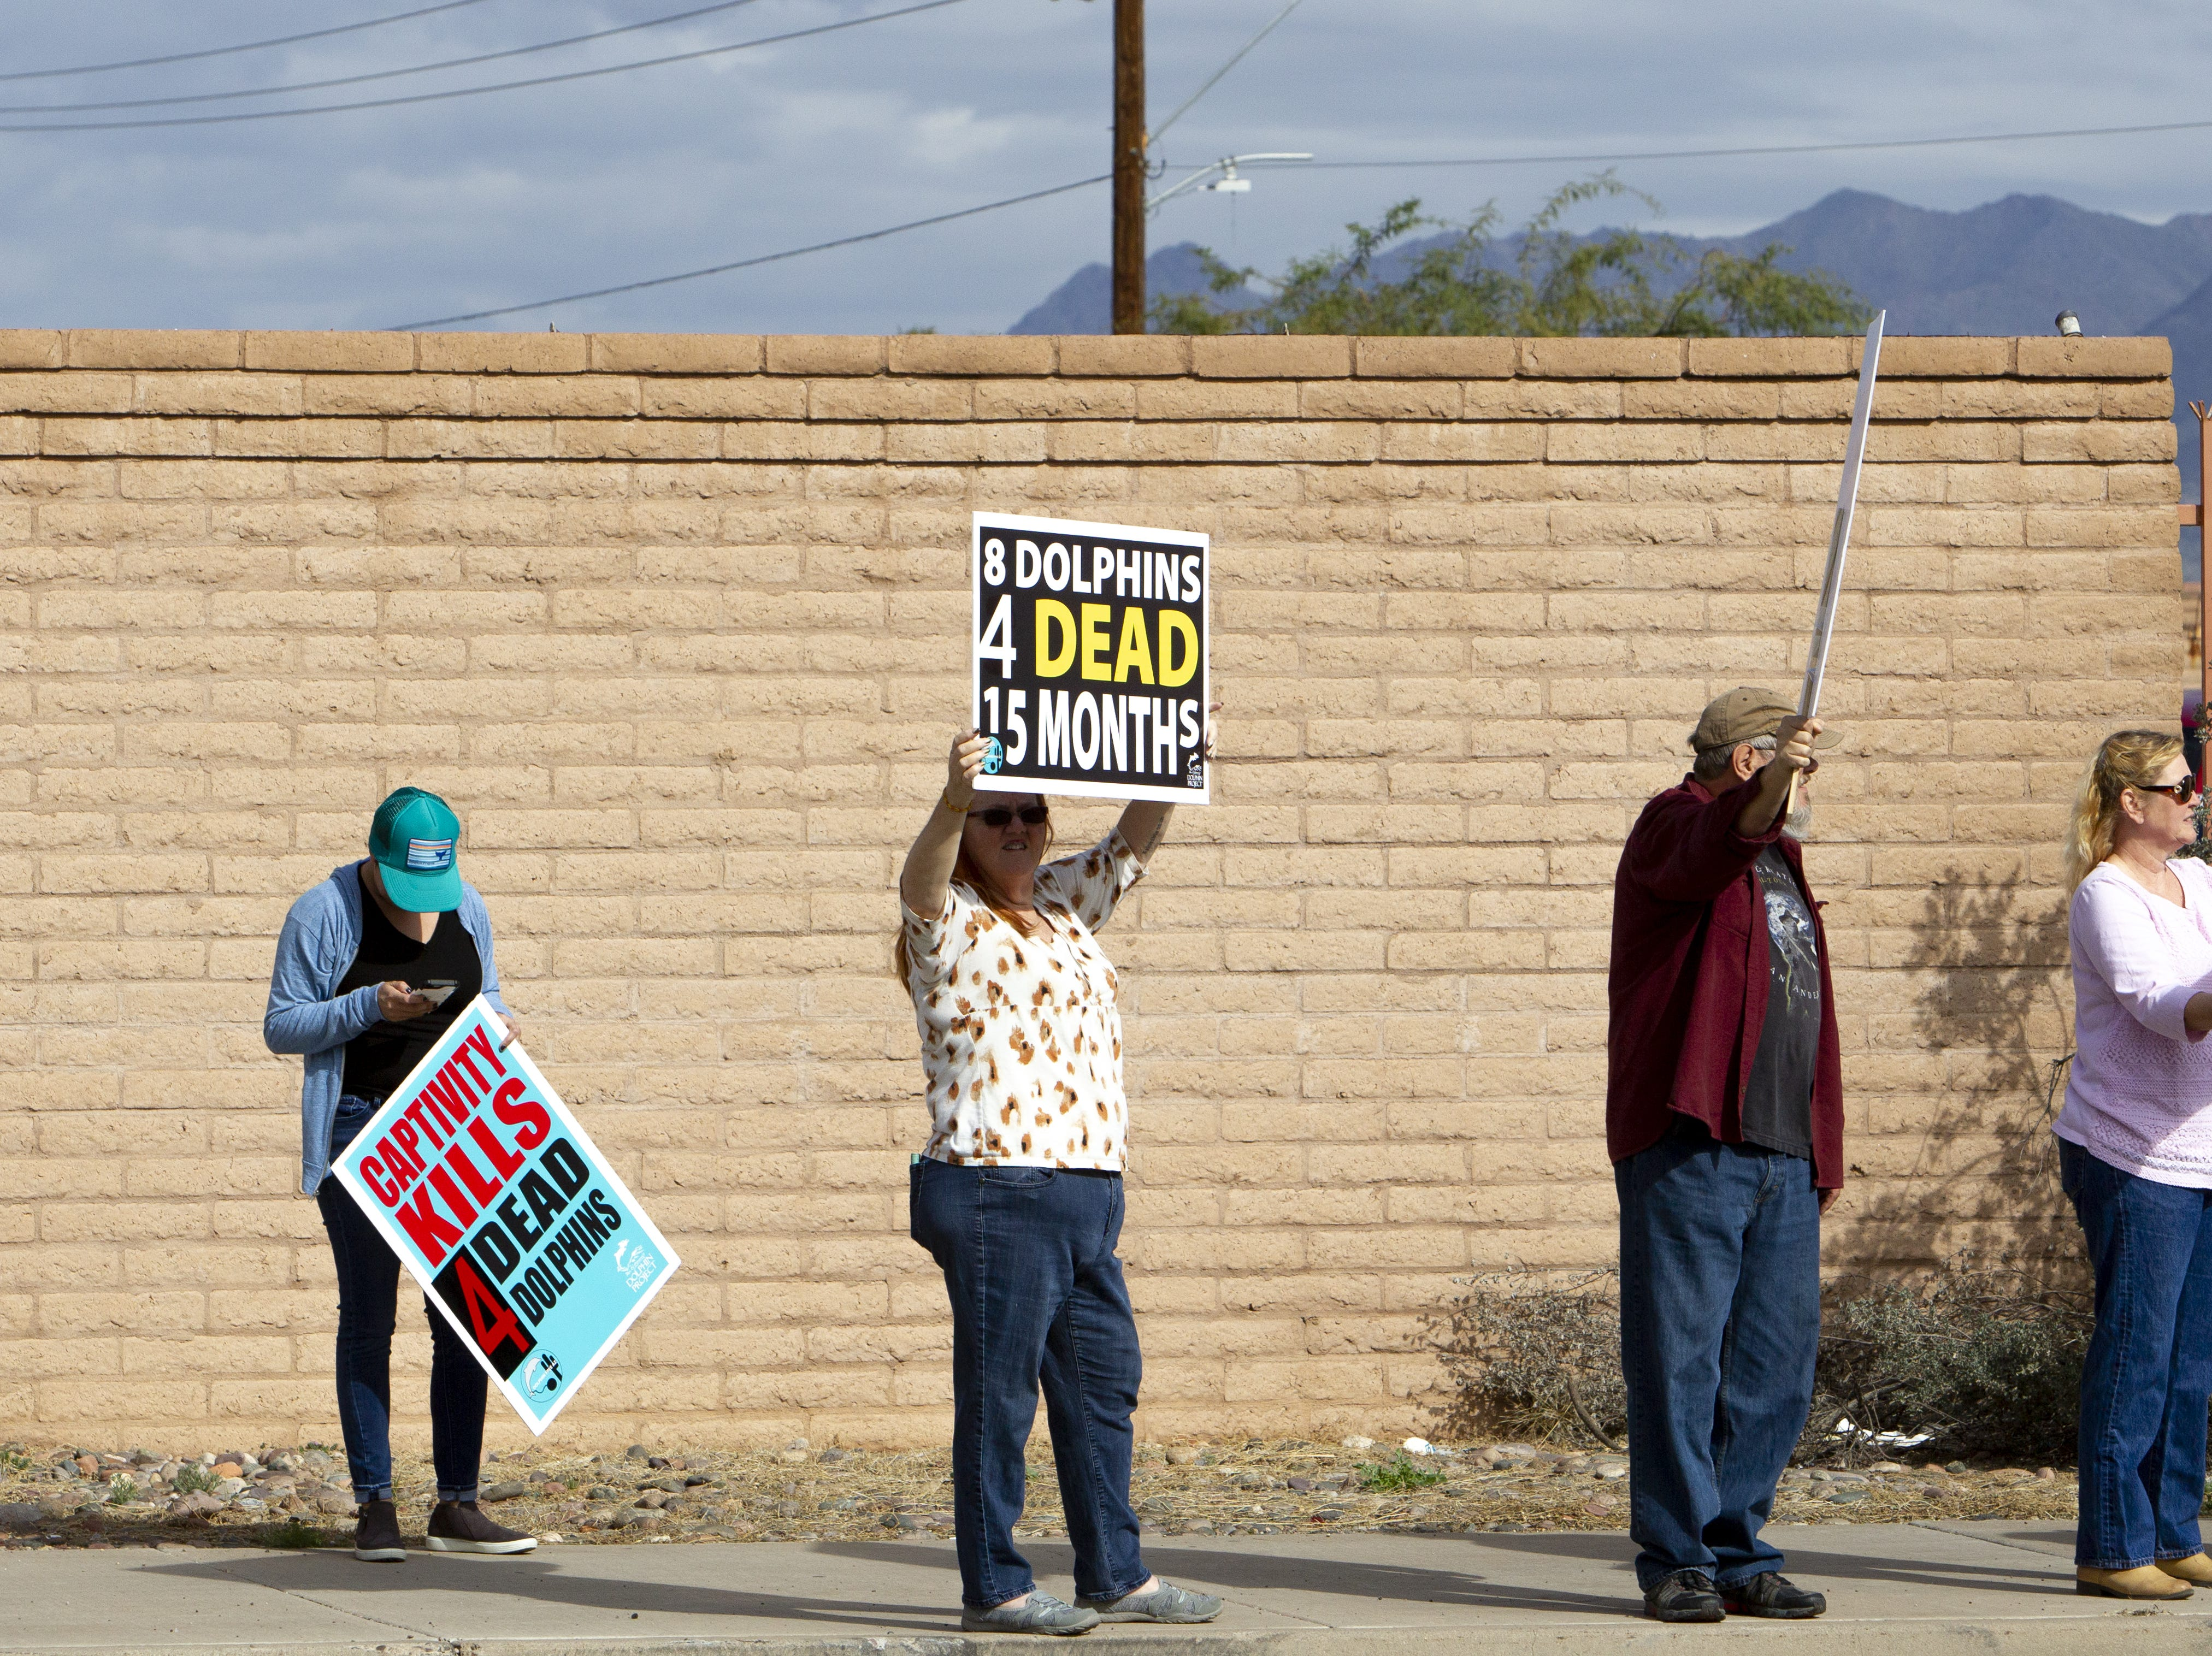 Dolphinaris protesters line both sides of N. Pima Road at a protest against Dolphinaris in Scottsdale on Feb. 2, 2019. The protest was prompted by four dolphin deaths in less than two years.